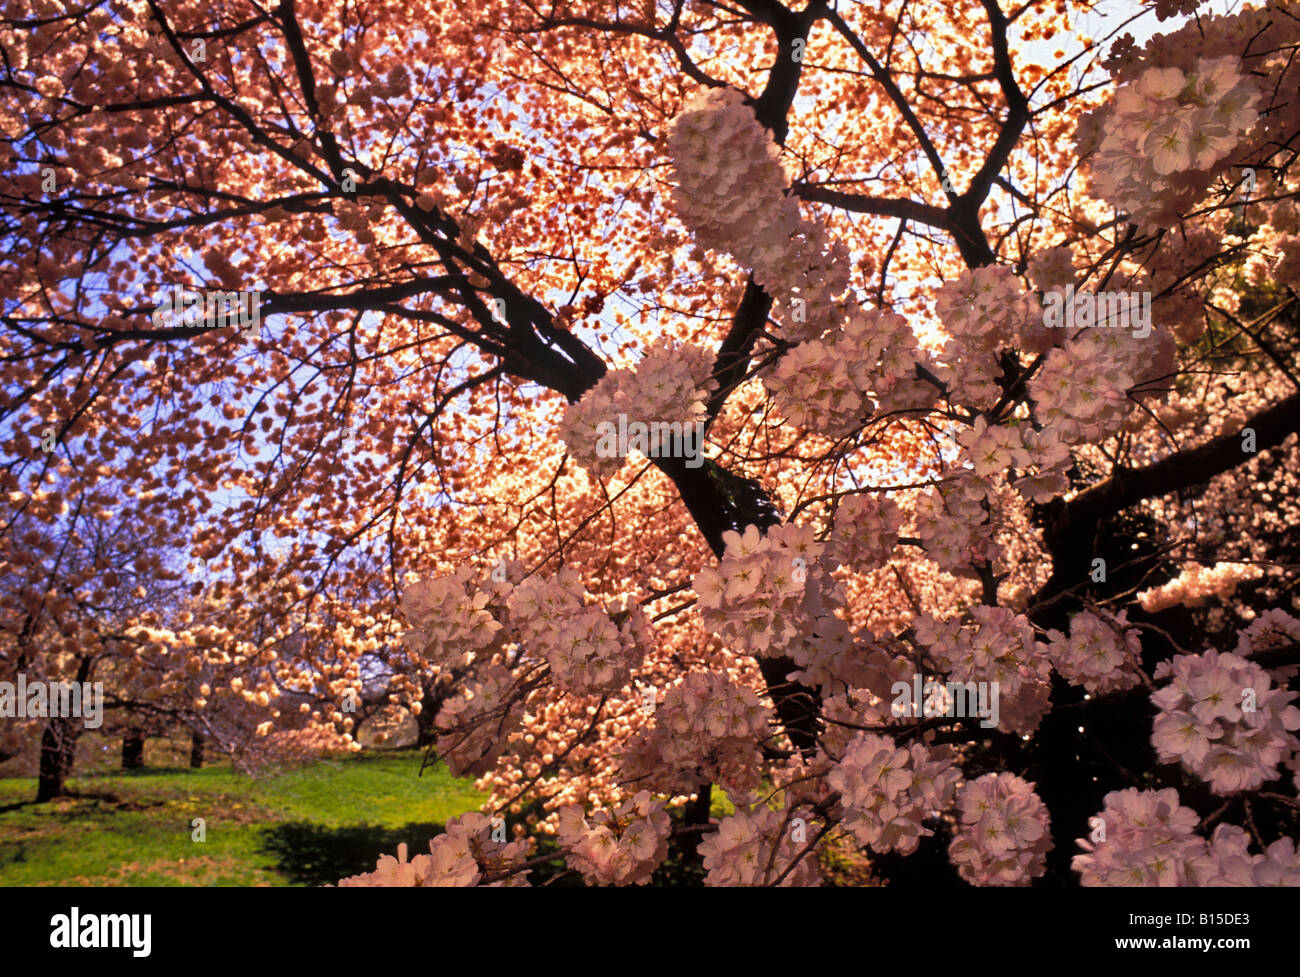 Painet Js0790 Cherry Blossoms Springtime In New York Botanical Garden Stock Photo Royalty Free